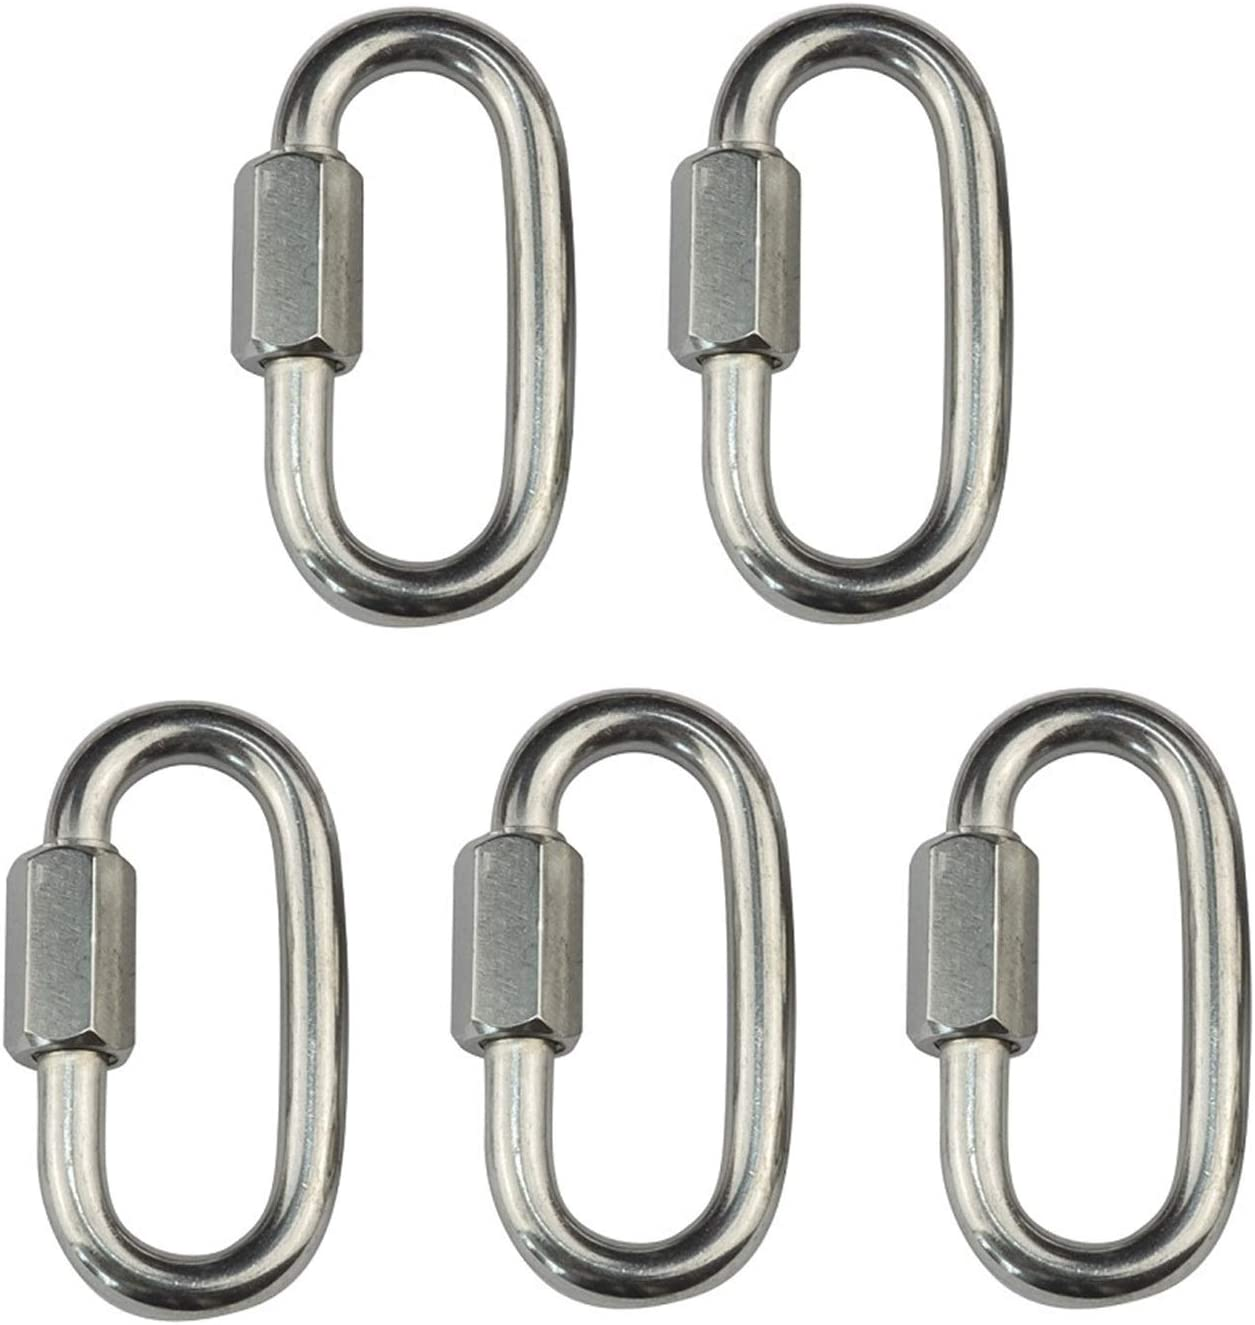 ZSPPPP 5PCS 304 Stainless Steel Spring Snap Quick Link with Scre